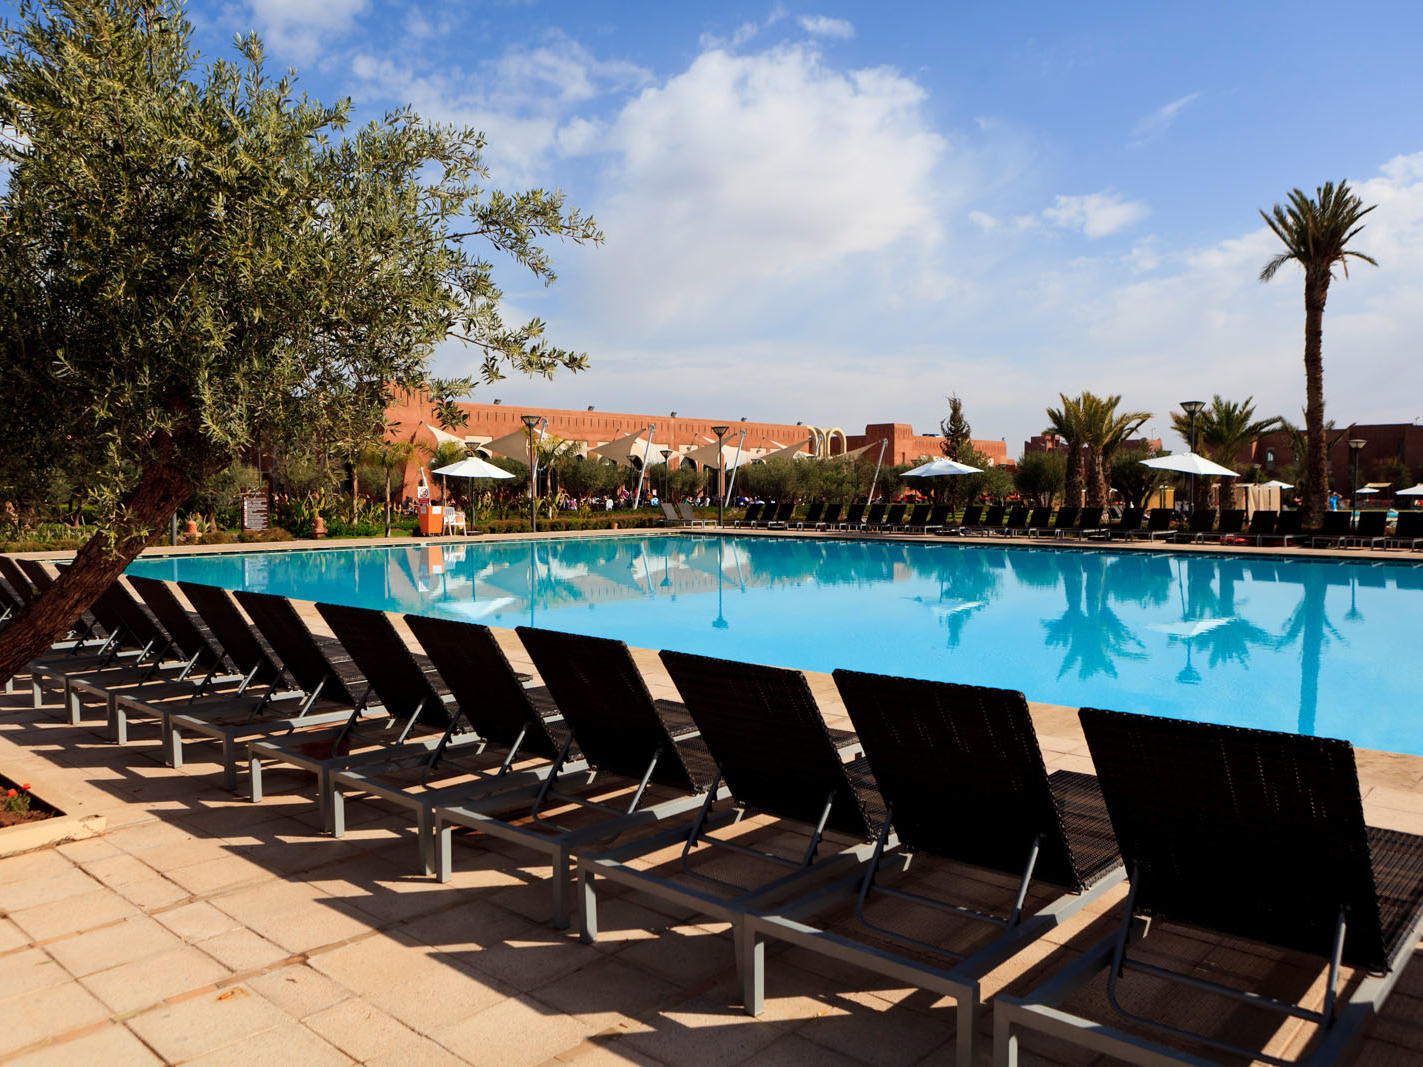 Pool at Kenzi Club Agdal Medina Hotel in Marrakesh, Morocco